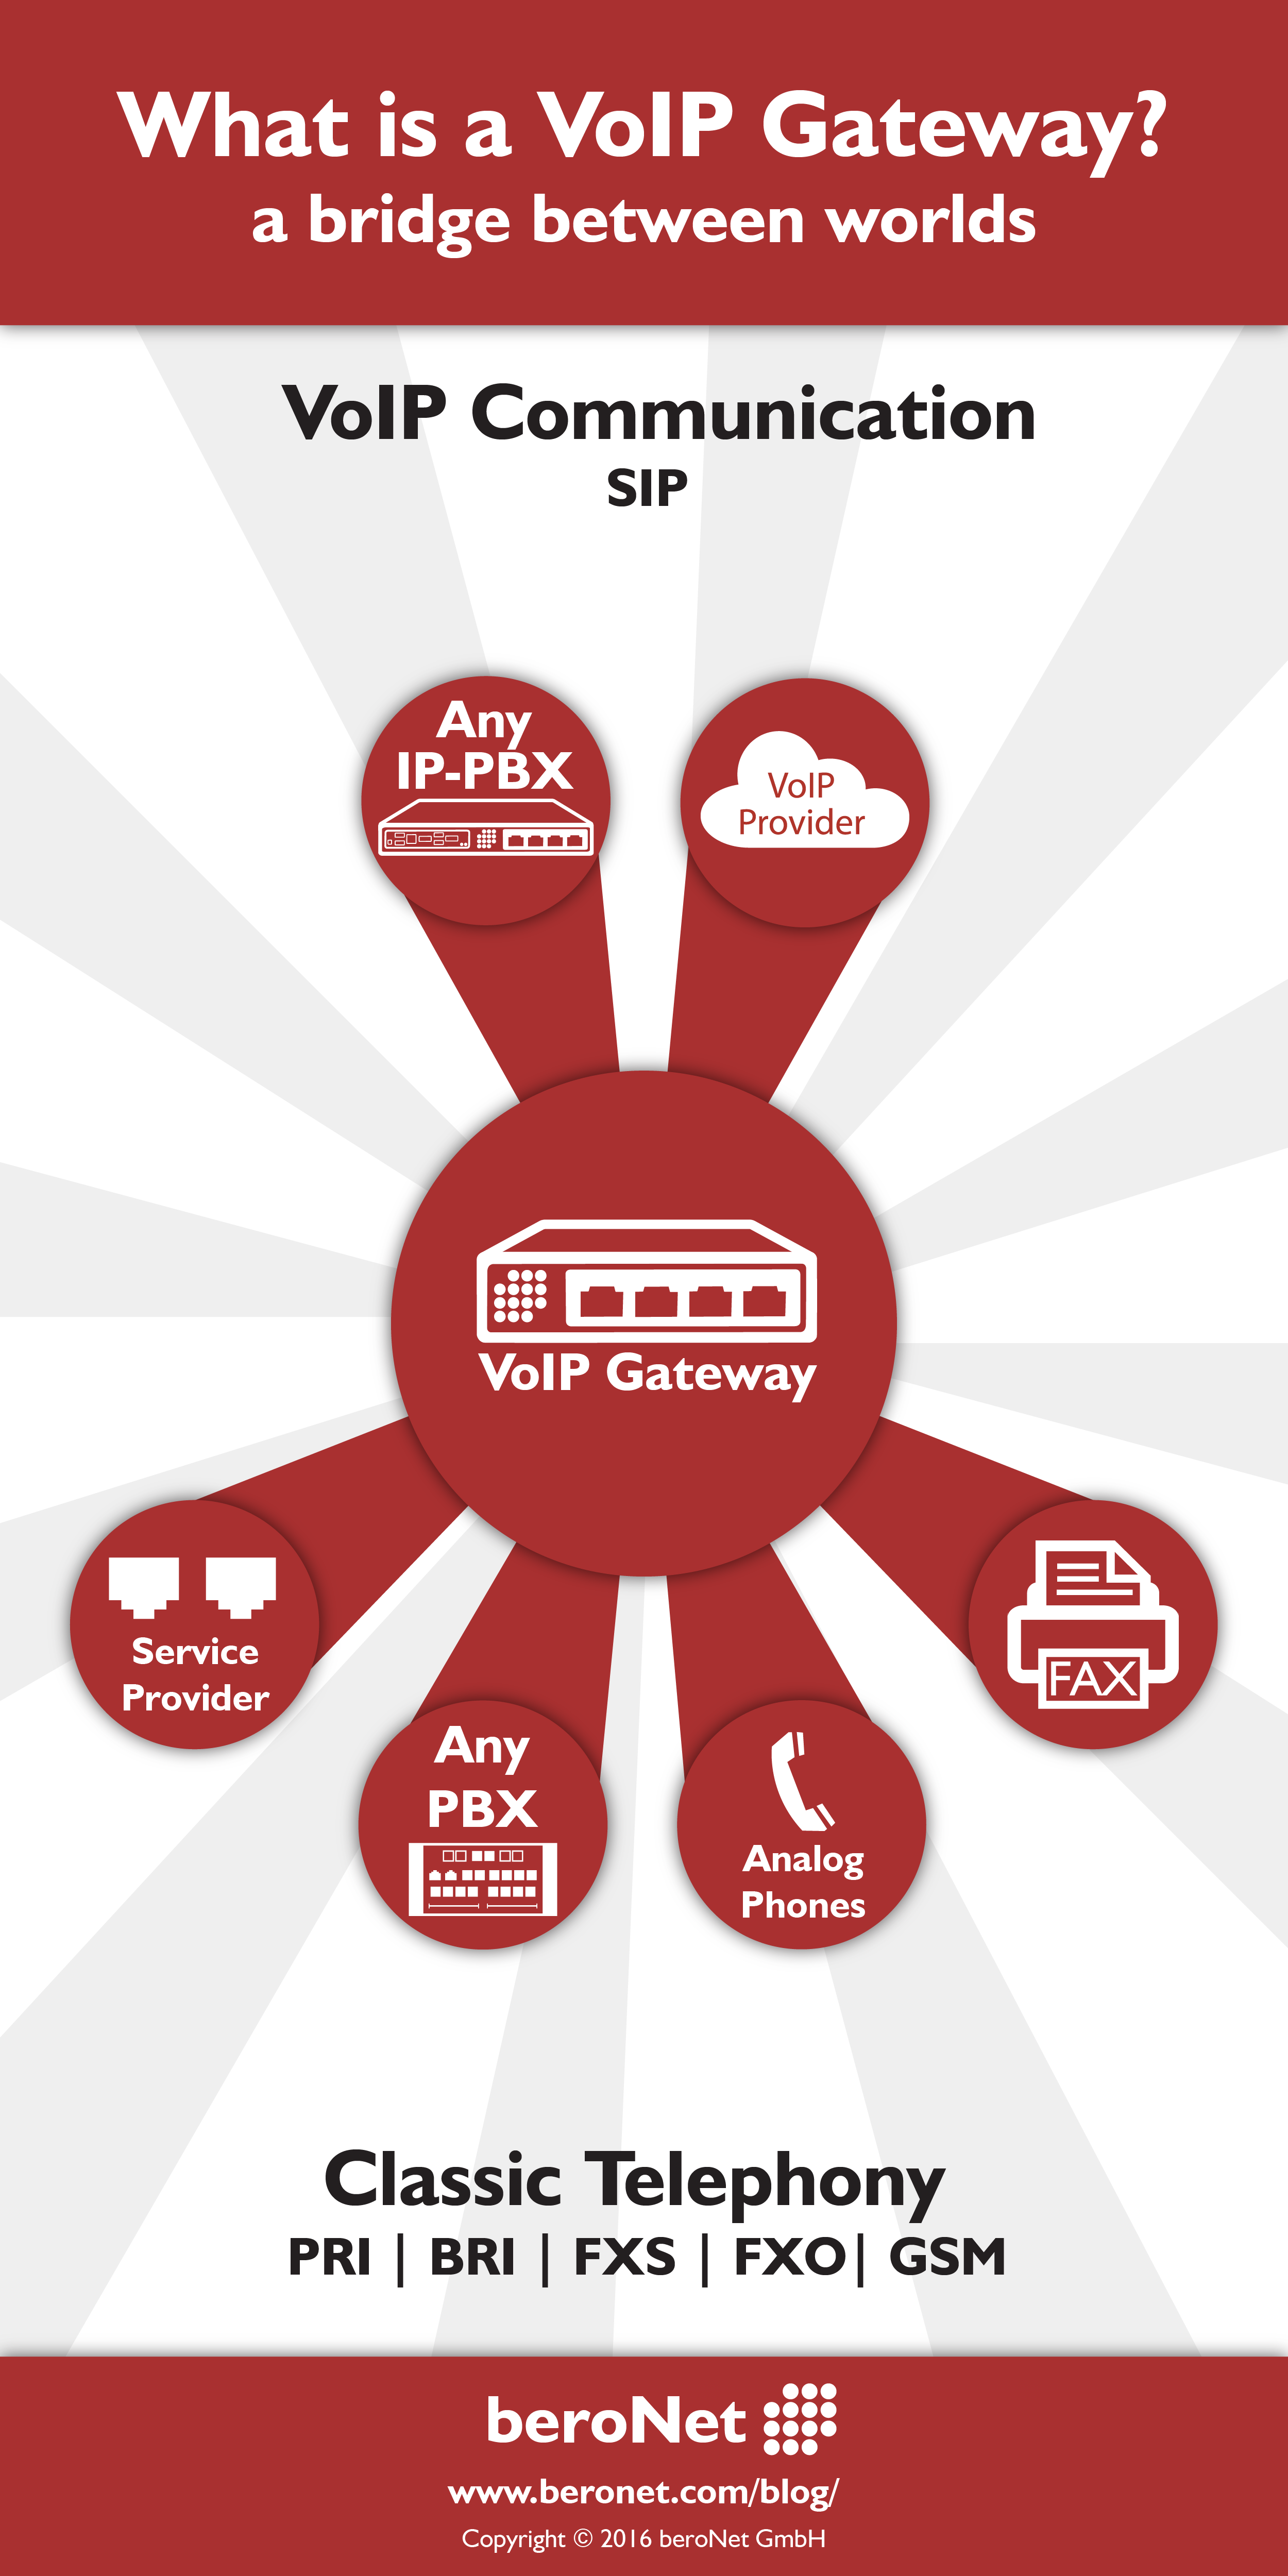 What is a VoIP Gateway?